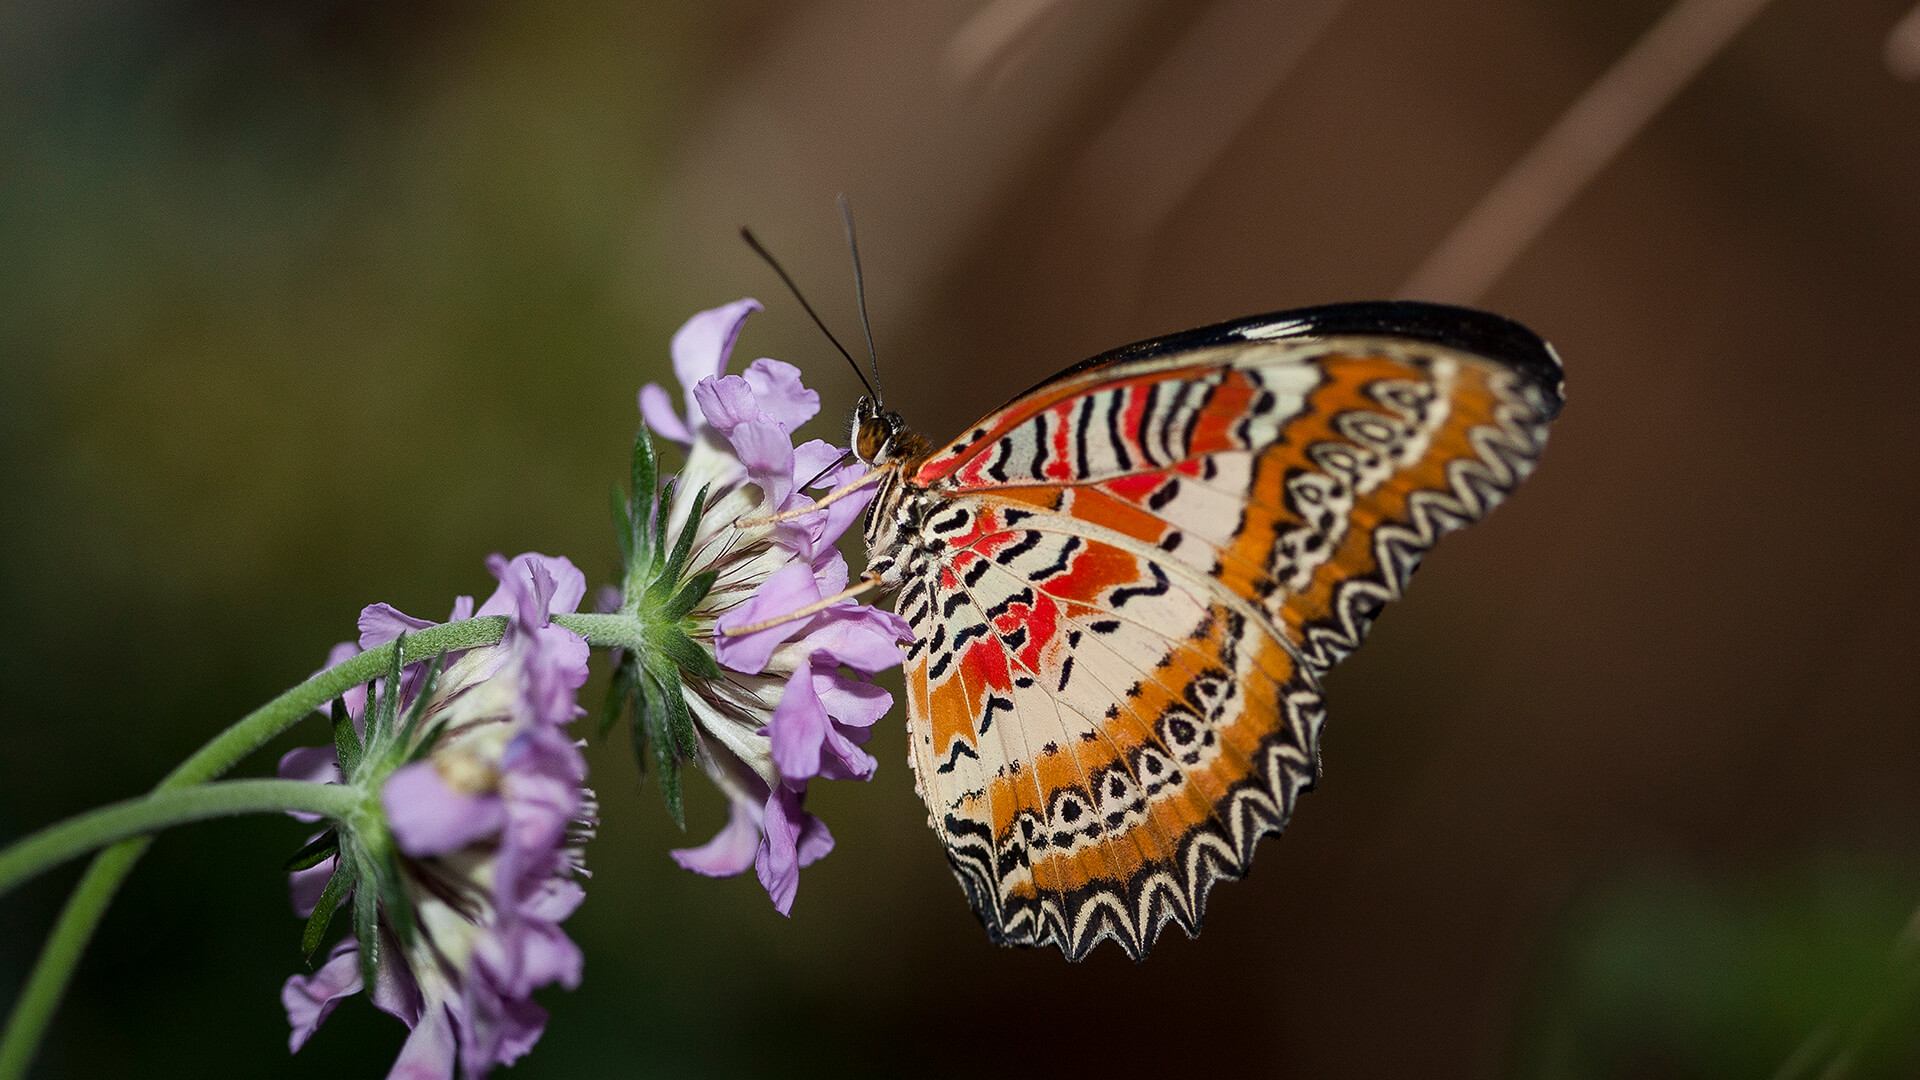 Orange colored butterfly sipping nectar from a purple flower